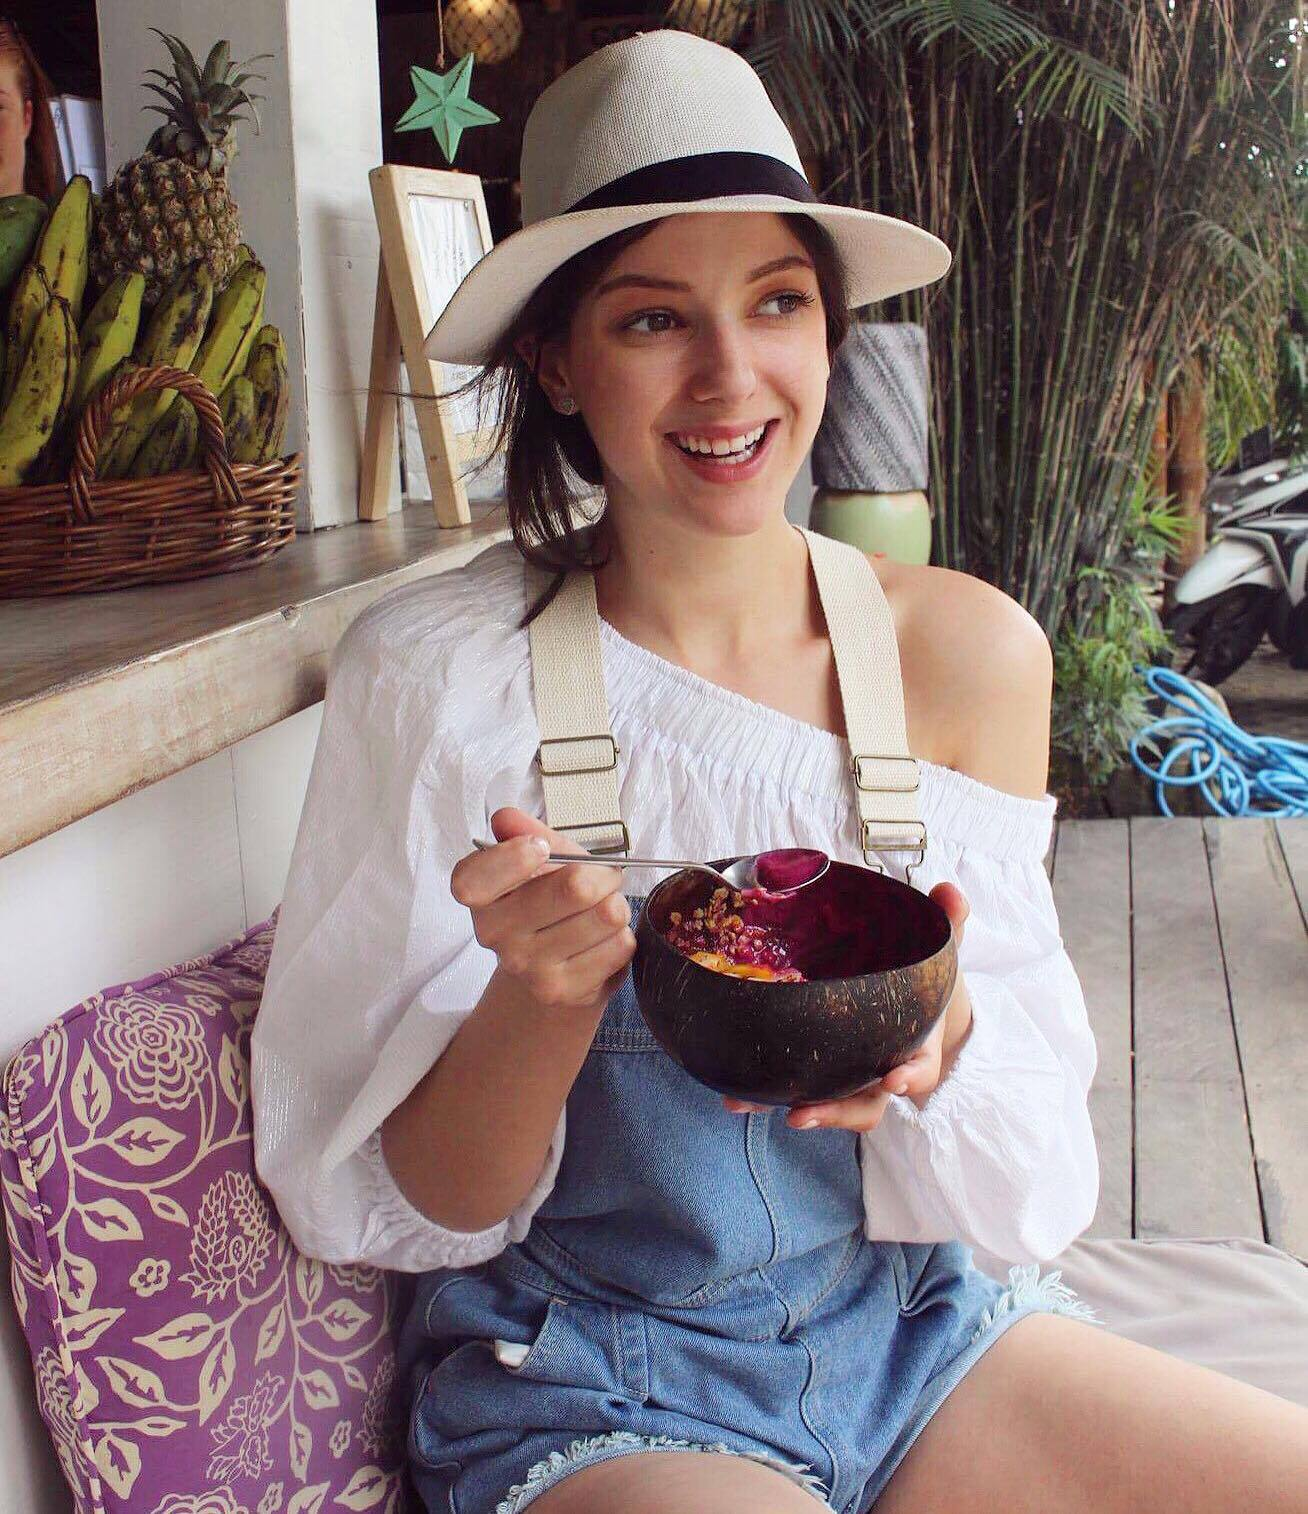 Smoothie bowls at Nalu Bowls in Canggu - one of the best tasting smoothie bowls I've ever had. Definitely worth a visit.